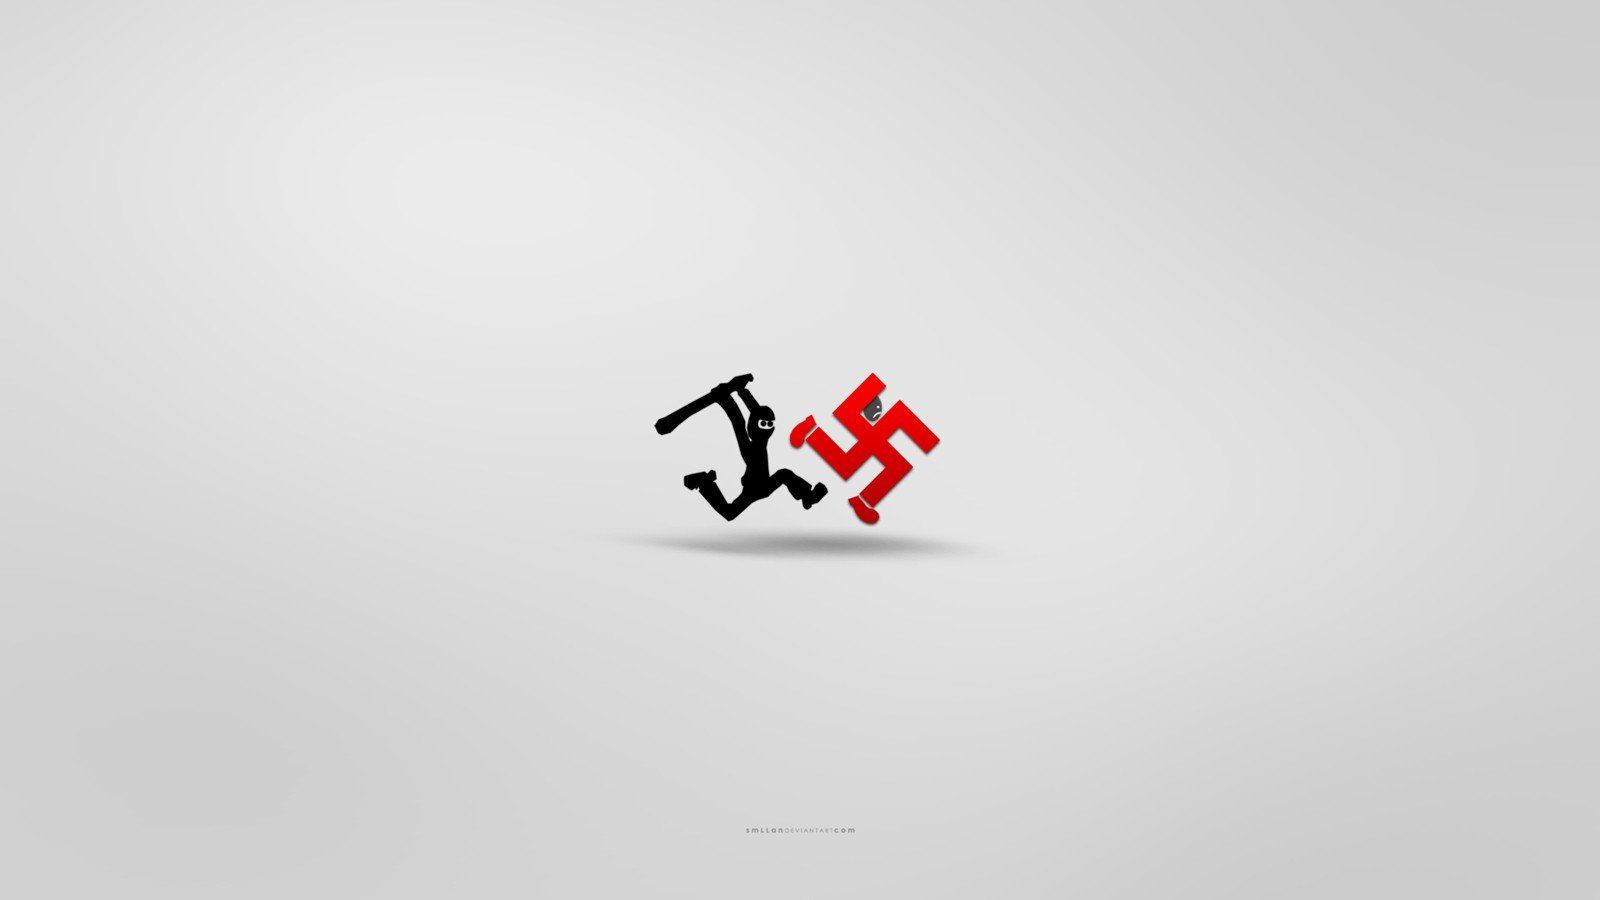 minimalistic ninjas funny swastika wallpaper backgroundSwastika Wallpaper Hd